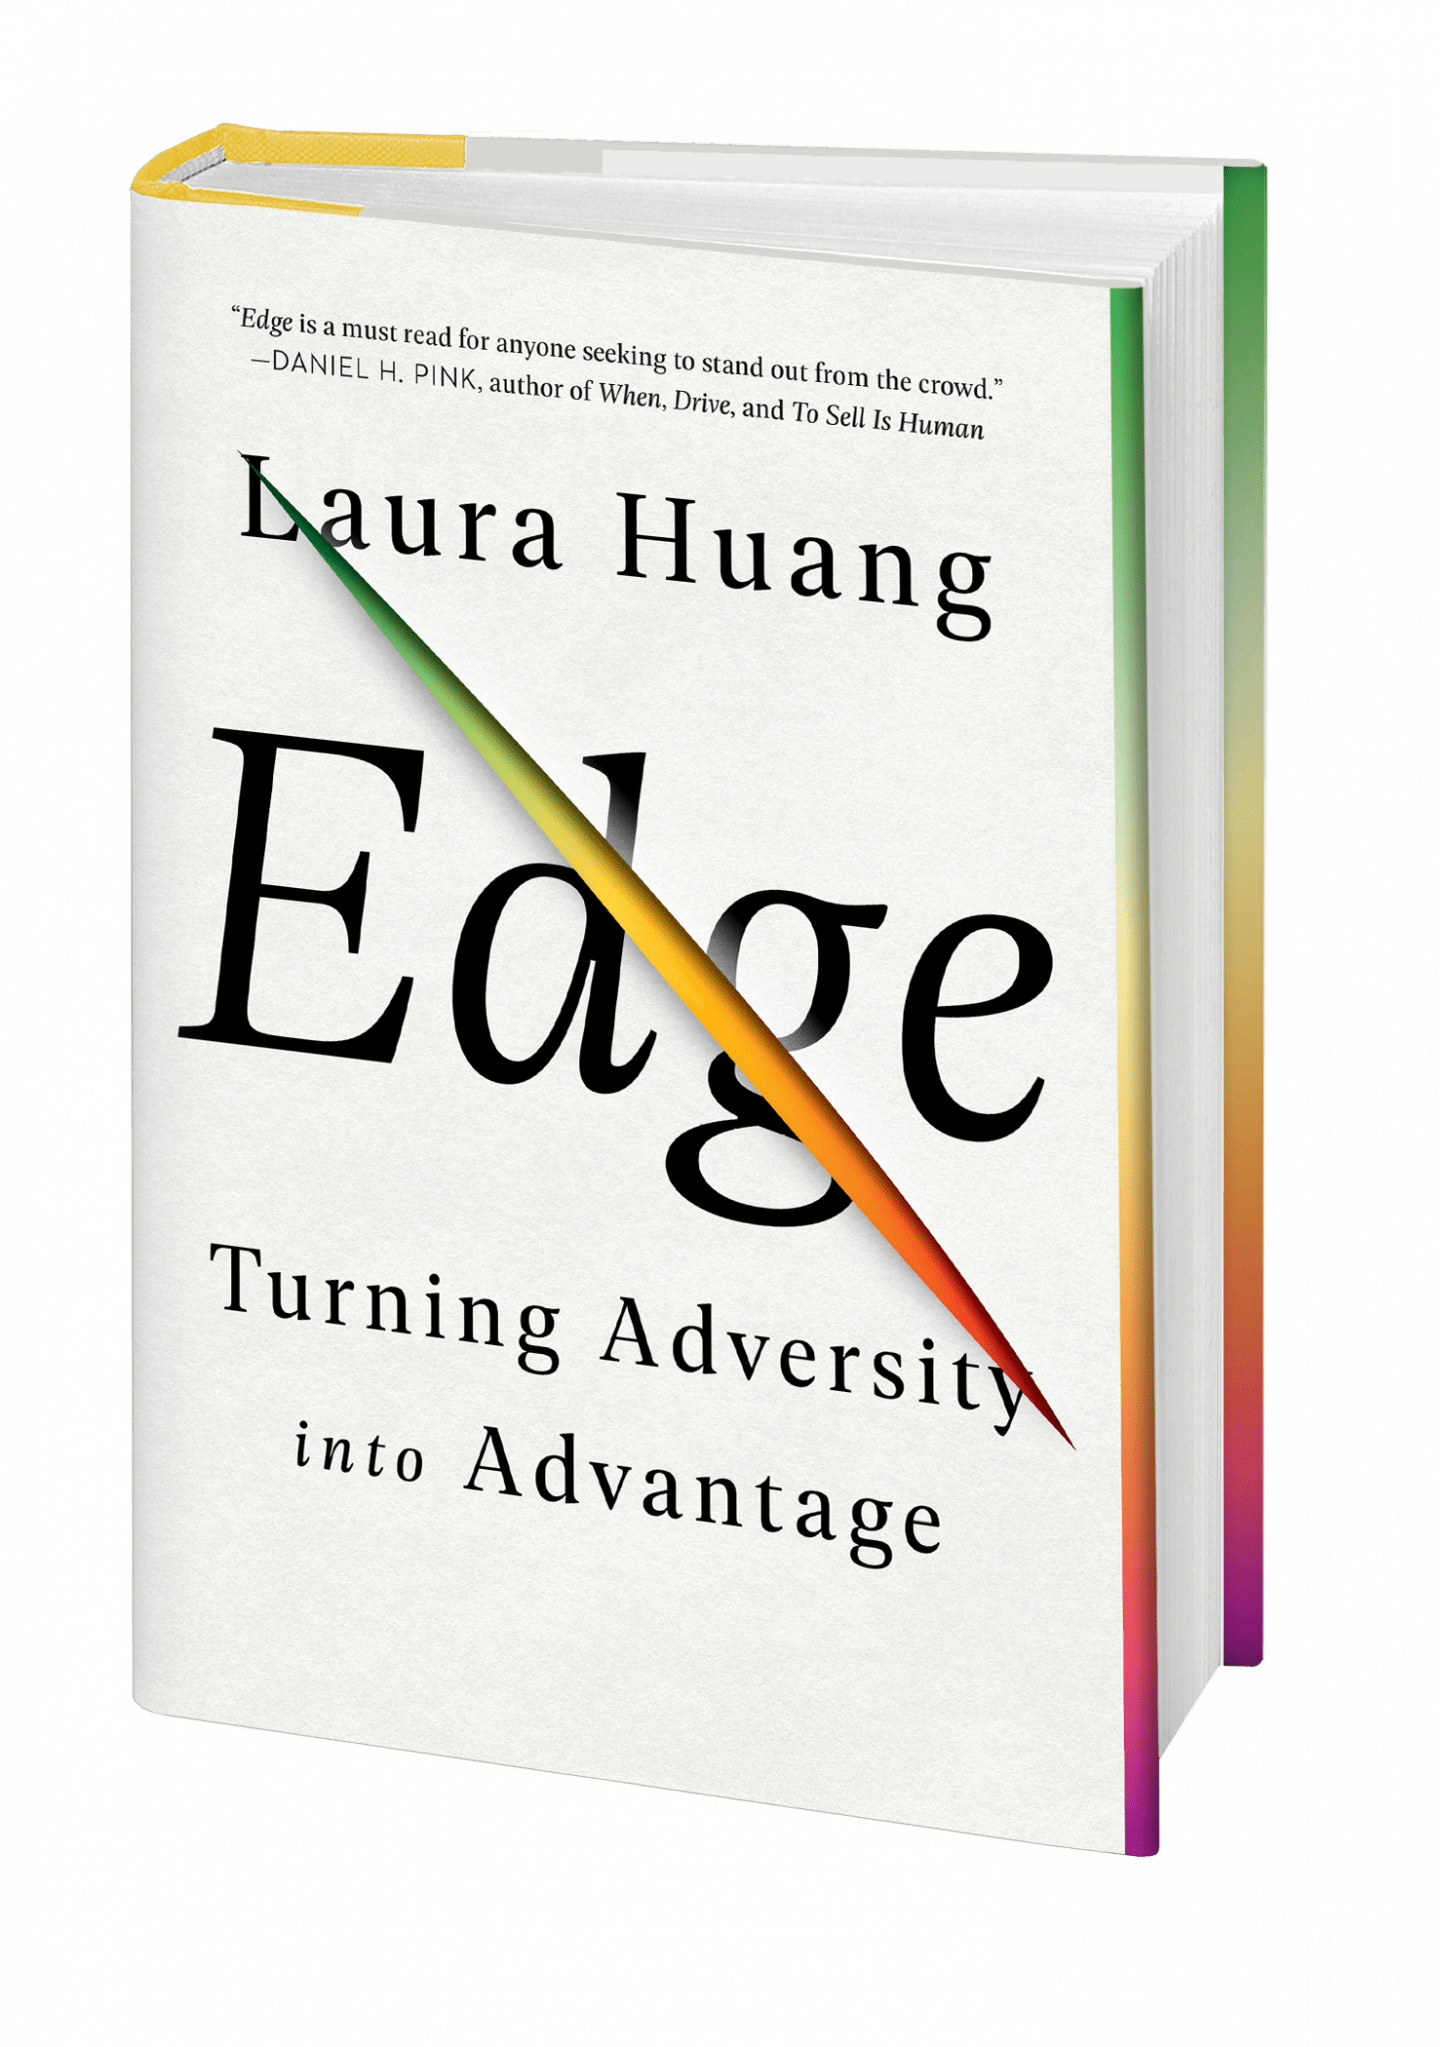 Edge from Laura Huang about turning adversity into advantage. Champion's Mindset, summer reading list, improving skills,